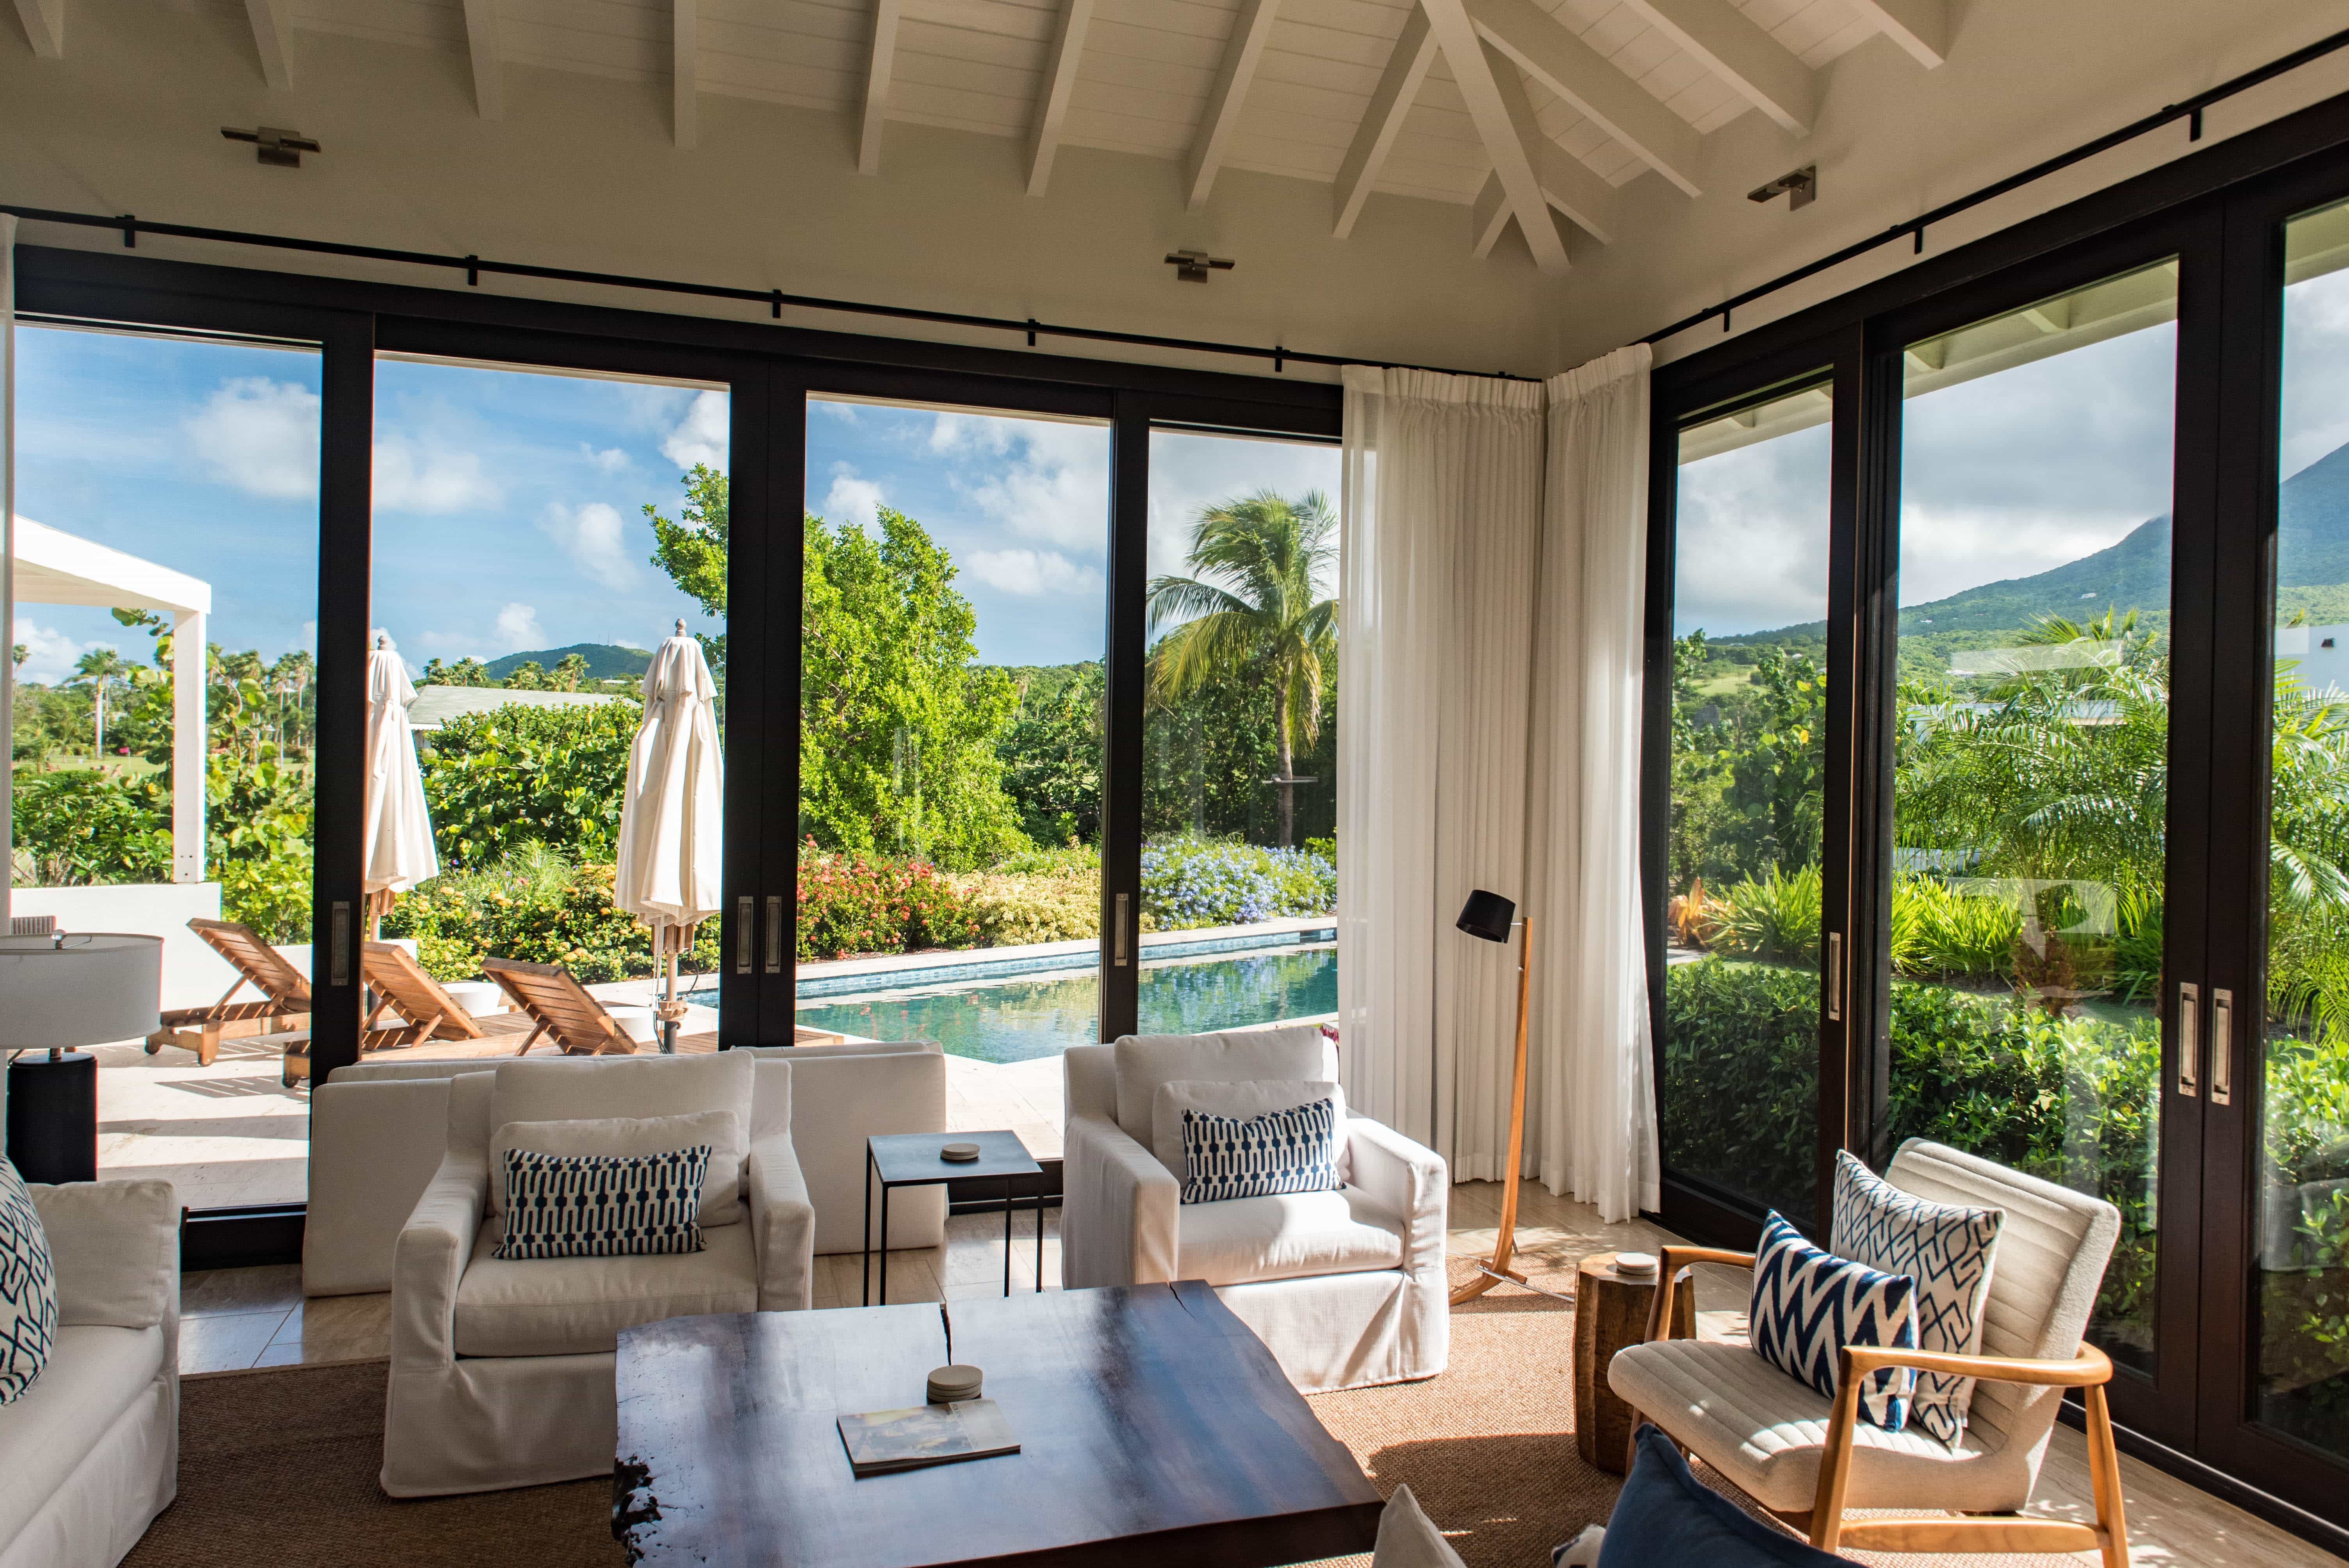 The villas boast varied living spaces but all are bright and offer exotic views from the comfort of a couch.